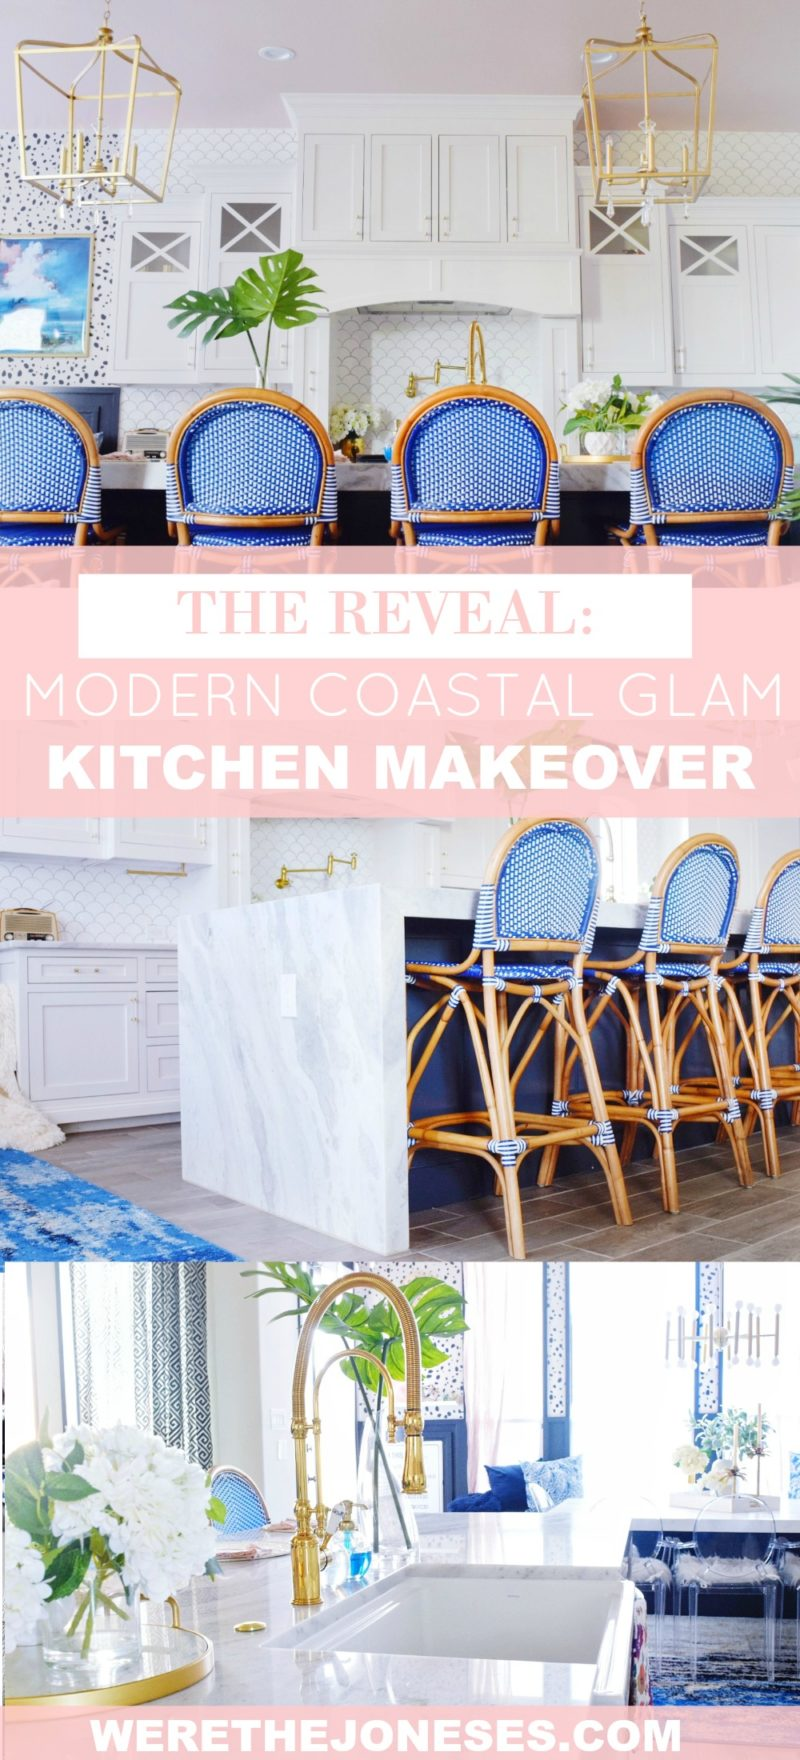 The Reveal Modern Coastal Glam Kitchen Makeover Blush Pink Ceiling Hi Gloss Ceiling Glossy Ceiling Blue Bistro Bar Stools Coastal Counter Stools Tropical Kitchen Ideas Marble Countertops White Kitchen Ideas Brass Kitchen Fixtures Navy Cabinets Ideas